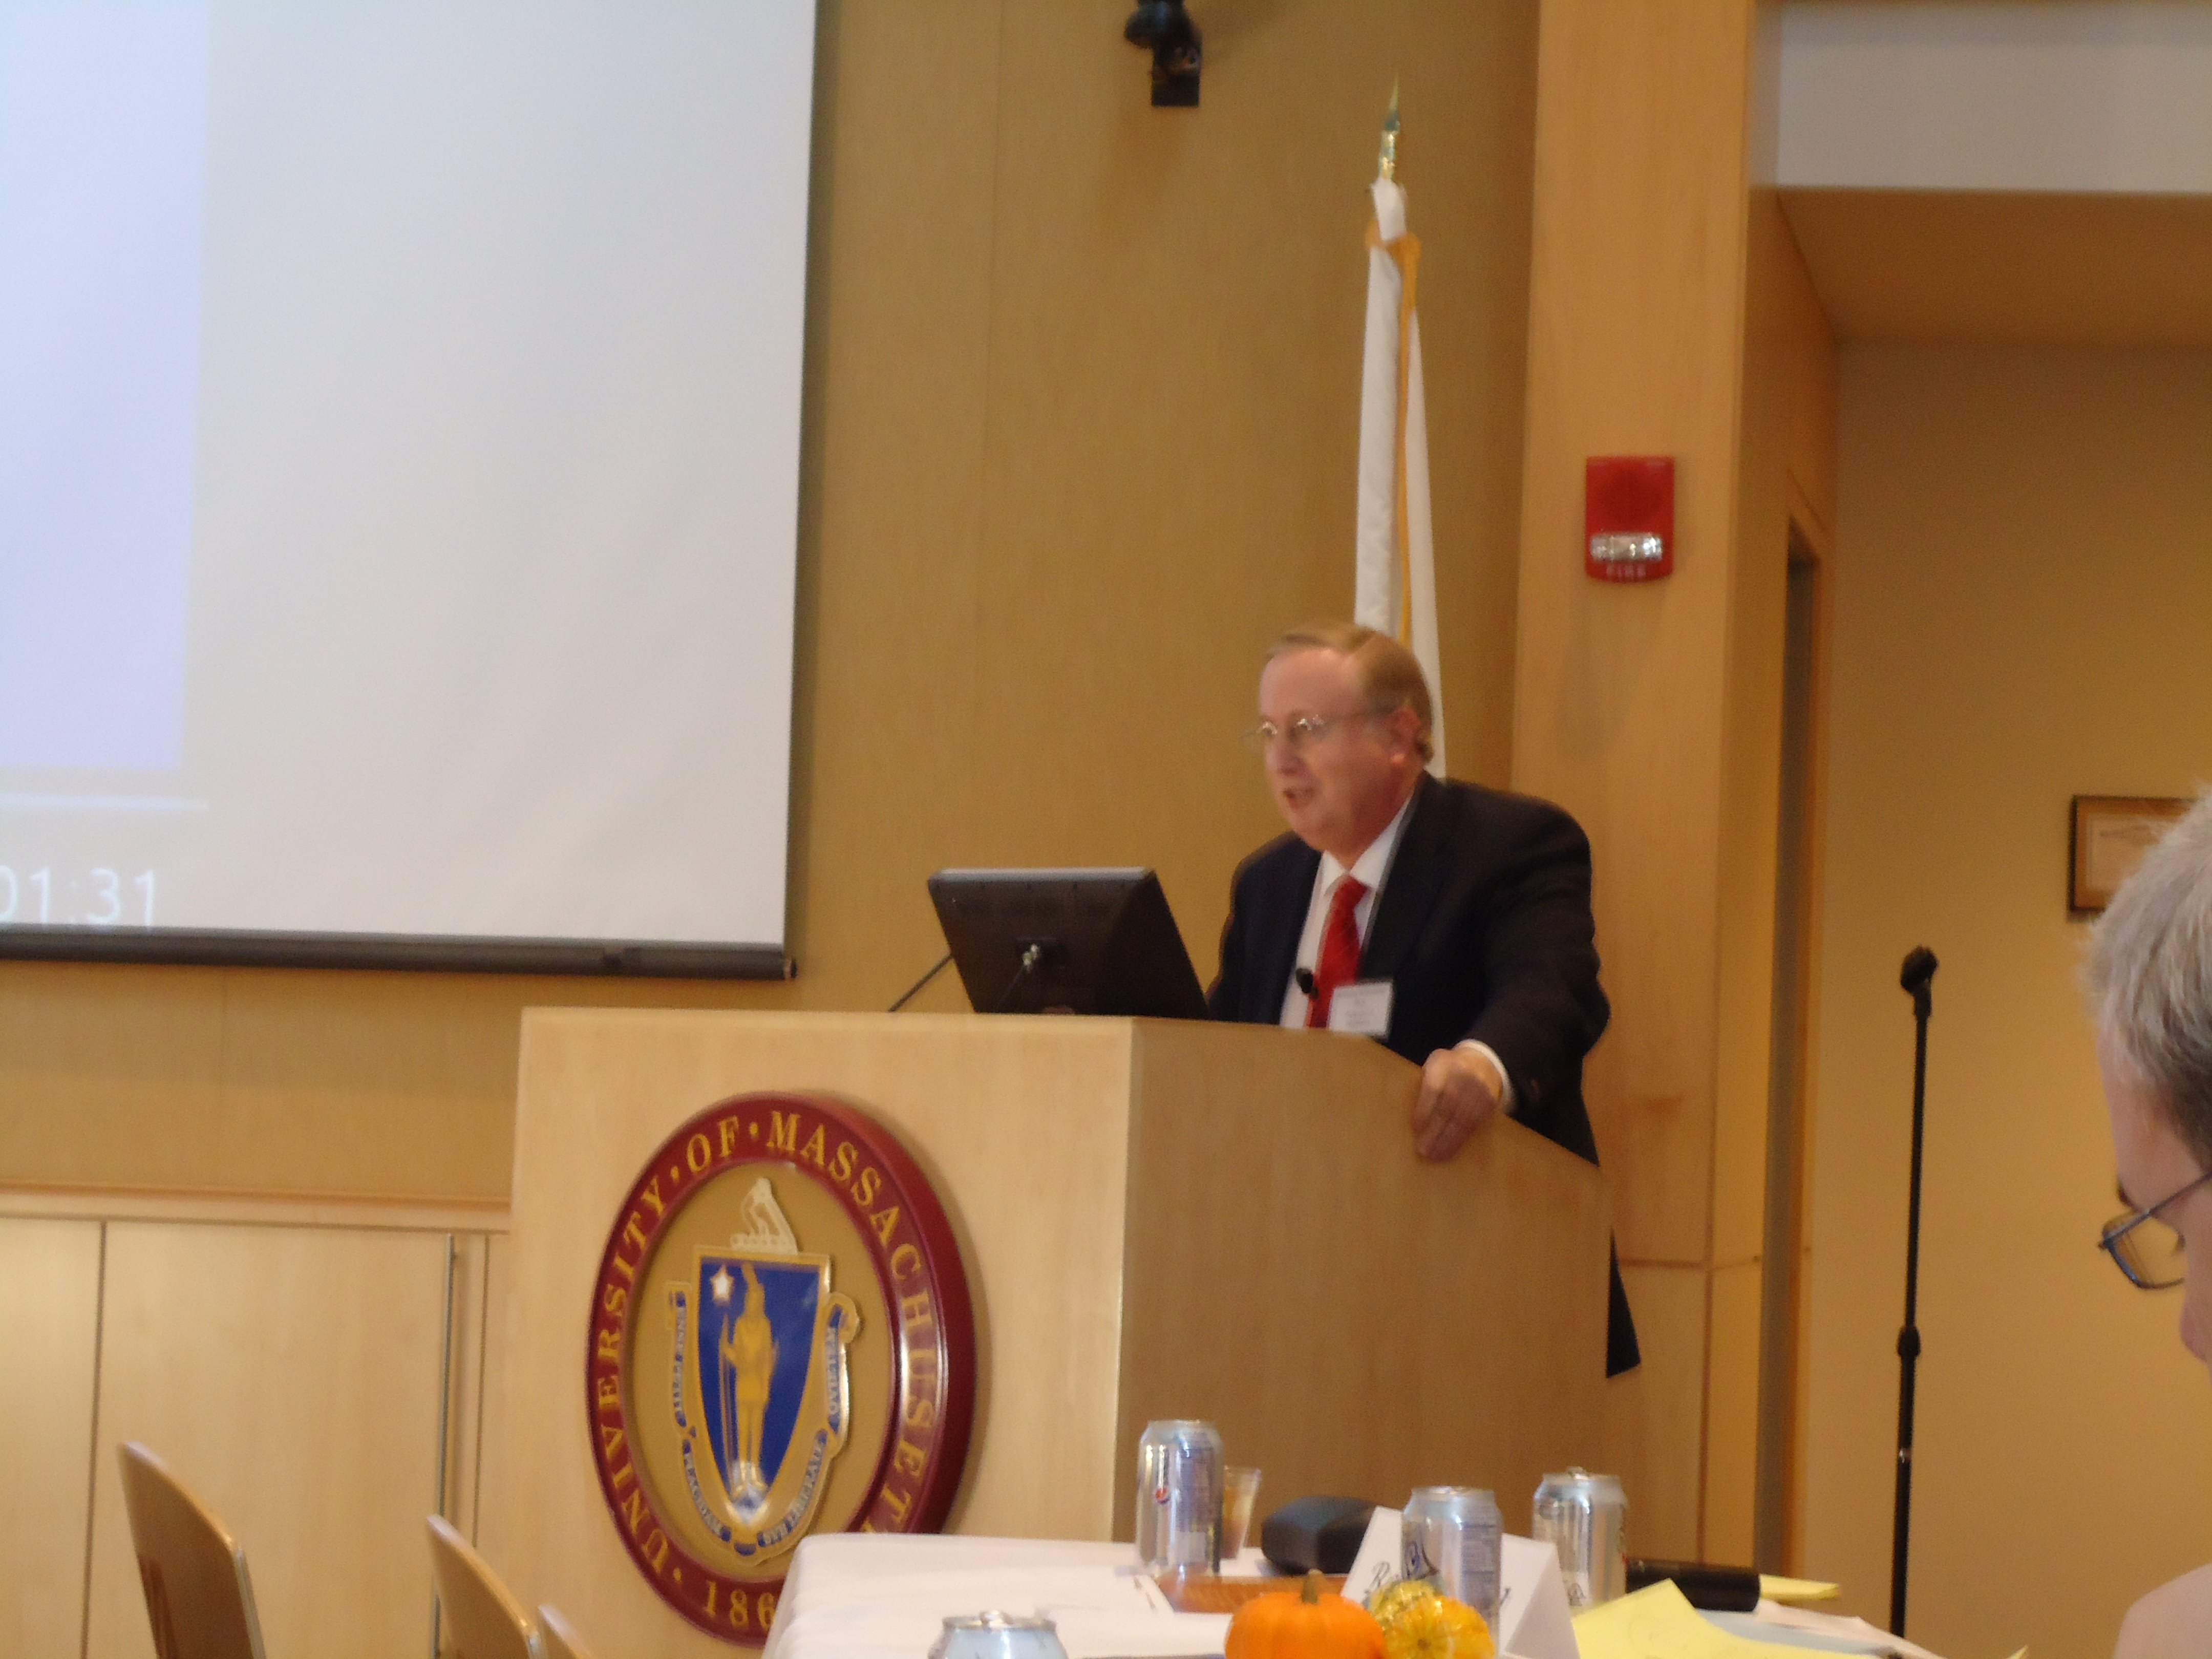 Anthony Rothschild, Research Day 10.13.2010